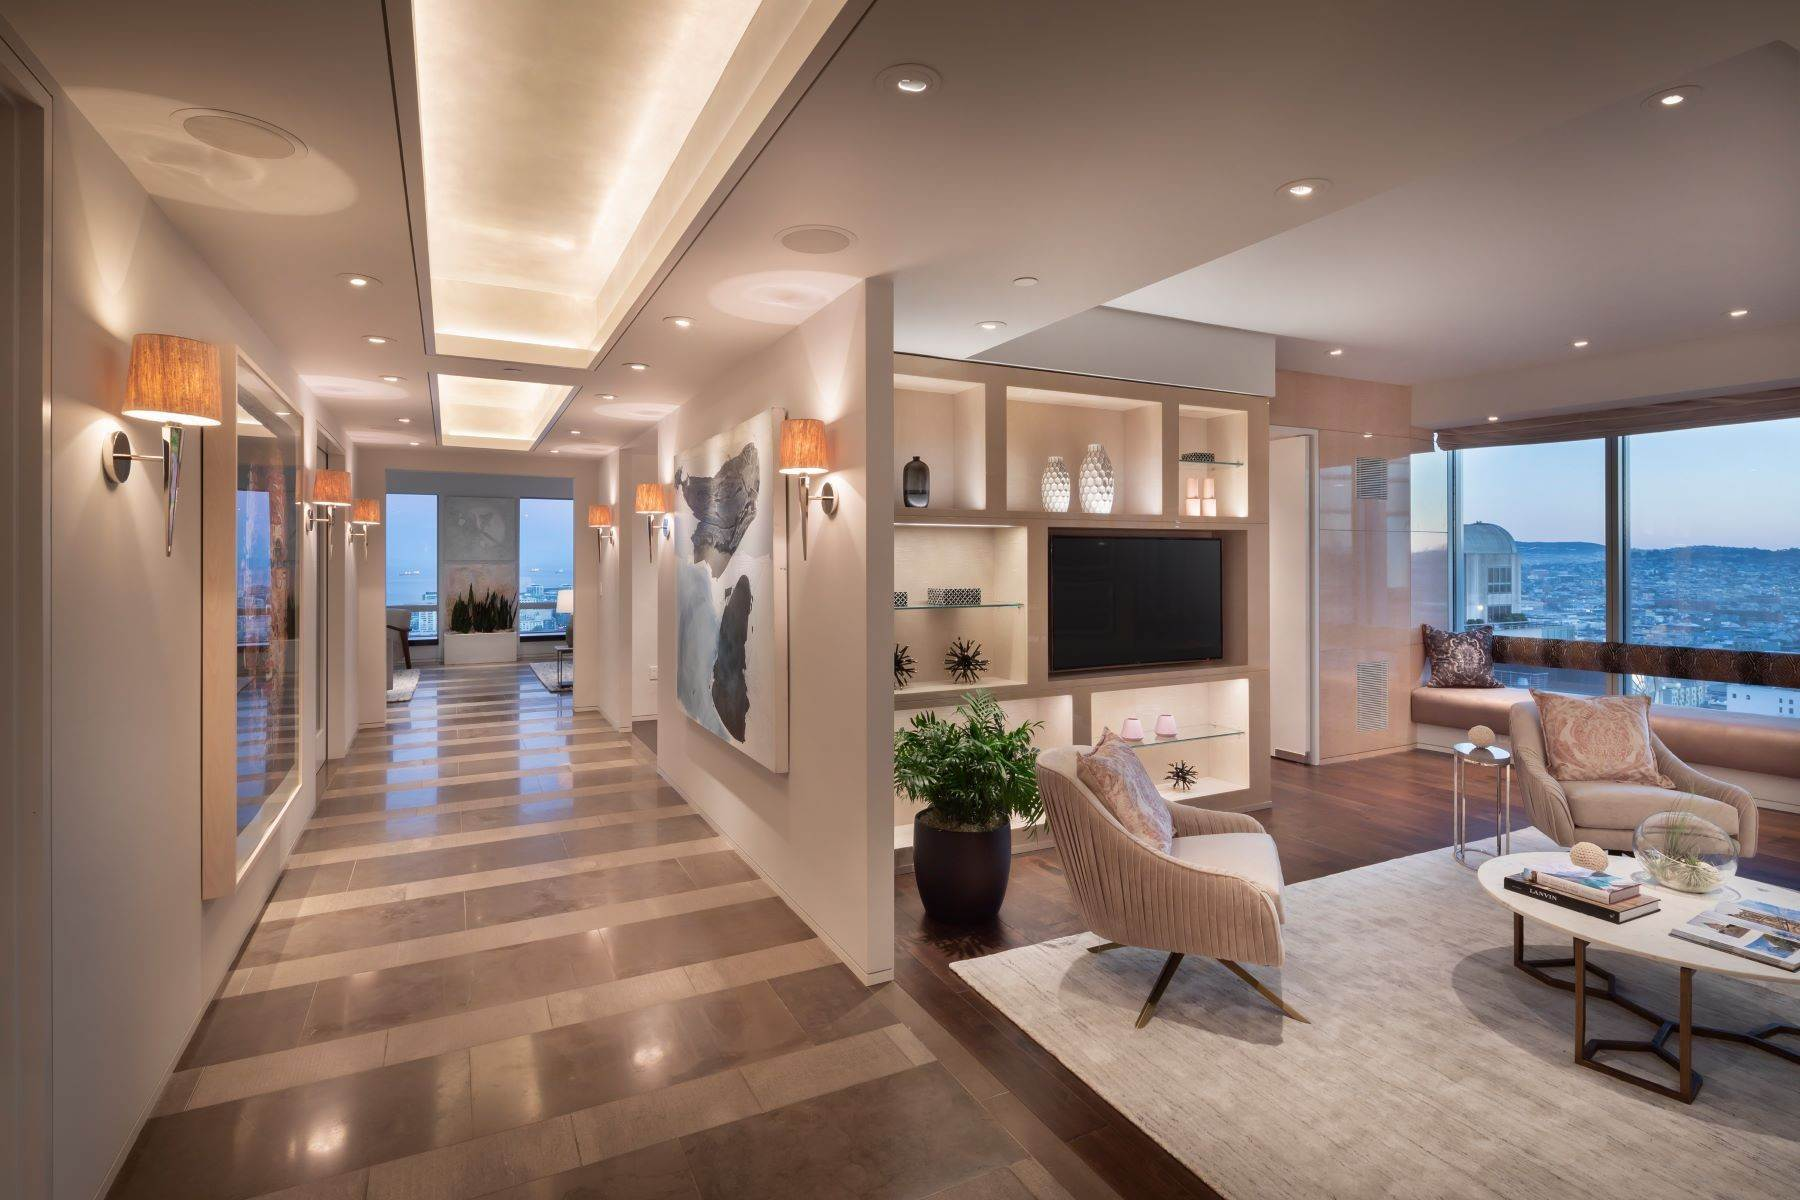 Condominiums for Sale at 4,550 SqFt Four Seasons Residence 34A 765 Market St, Apt 34A San Francisco, California 94103 United States